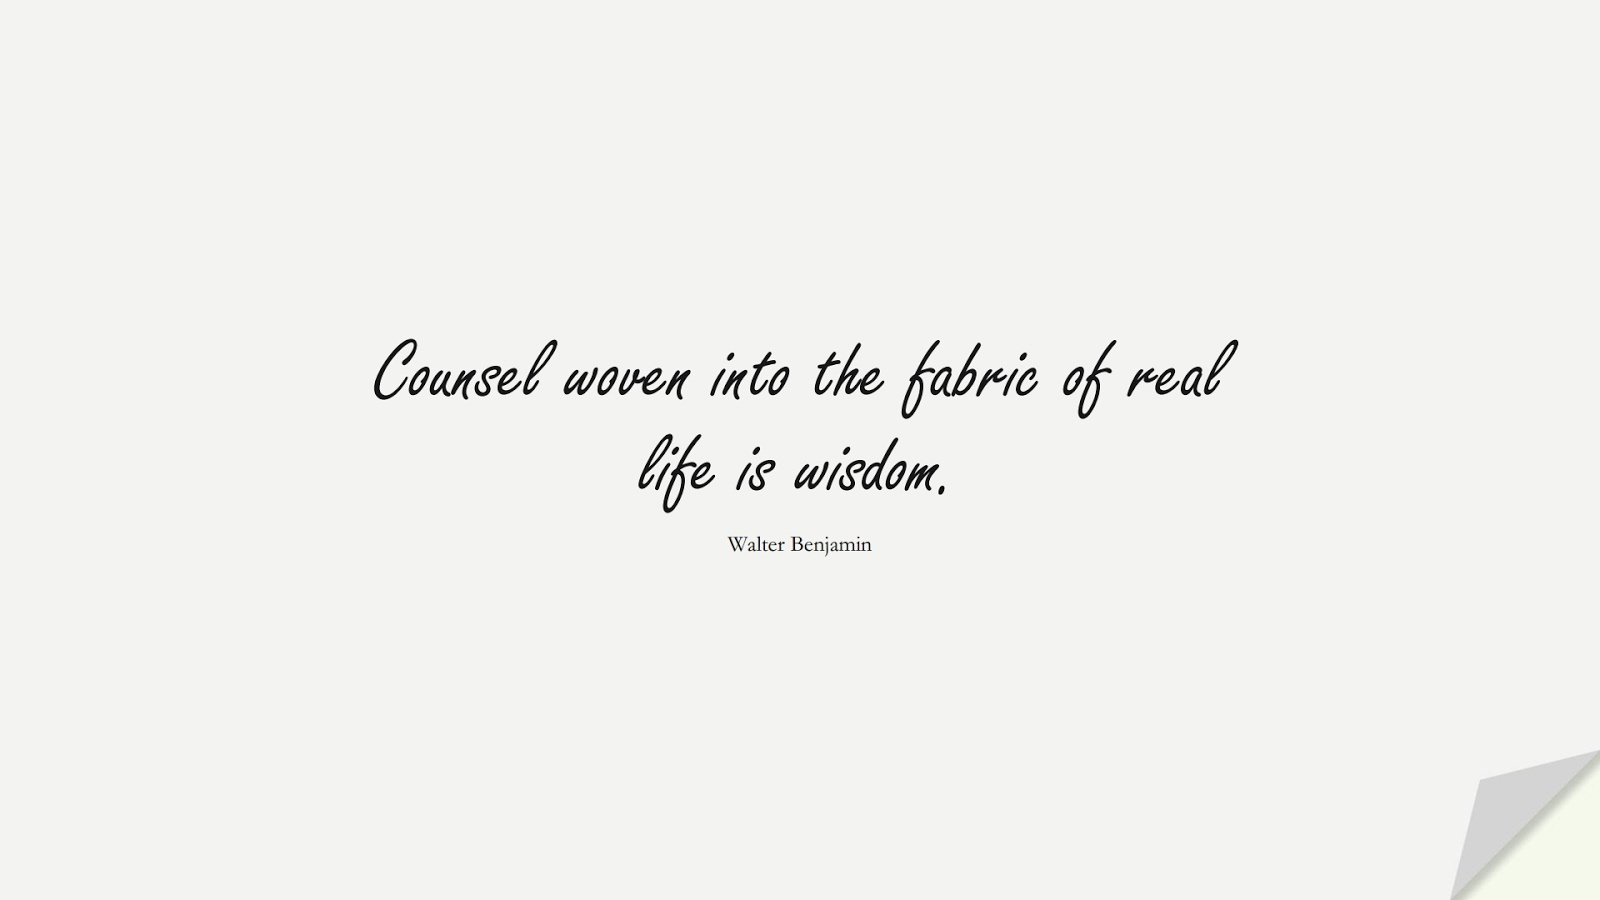 Counsel woven into the fabric of real life is wisdom. (Walter Benjamin);  #WordsofWisdom